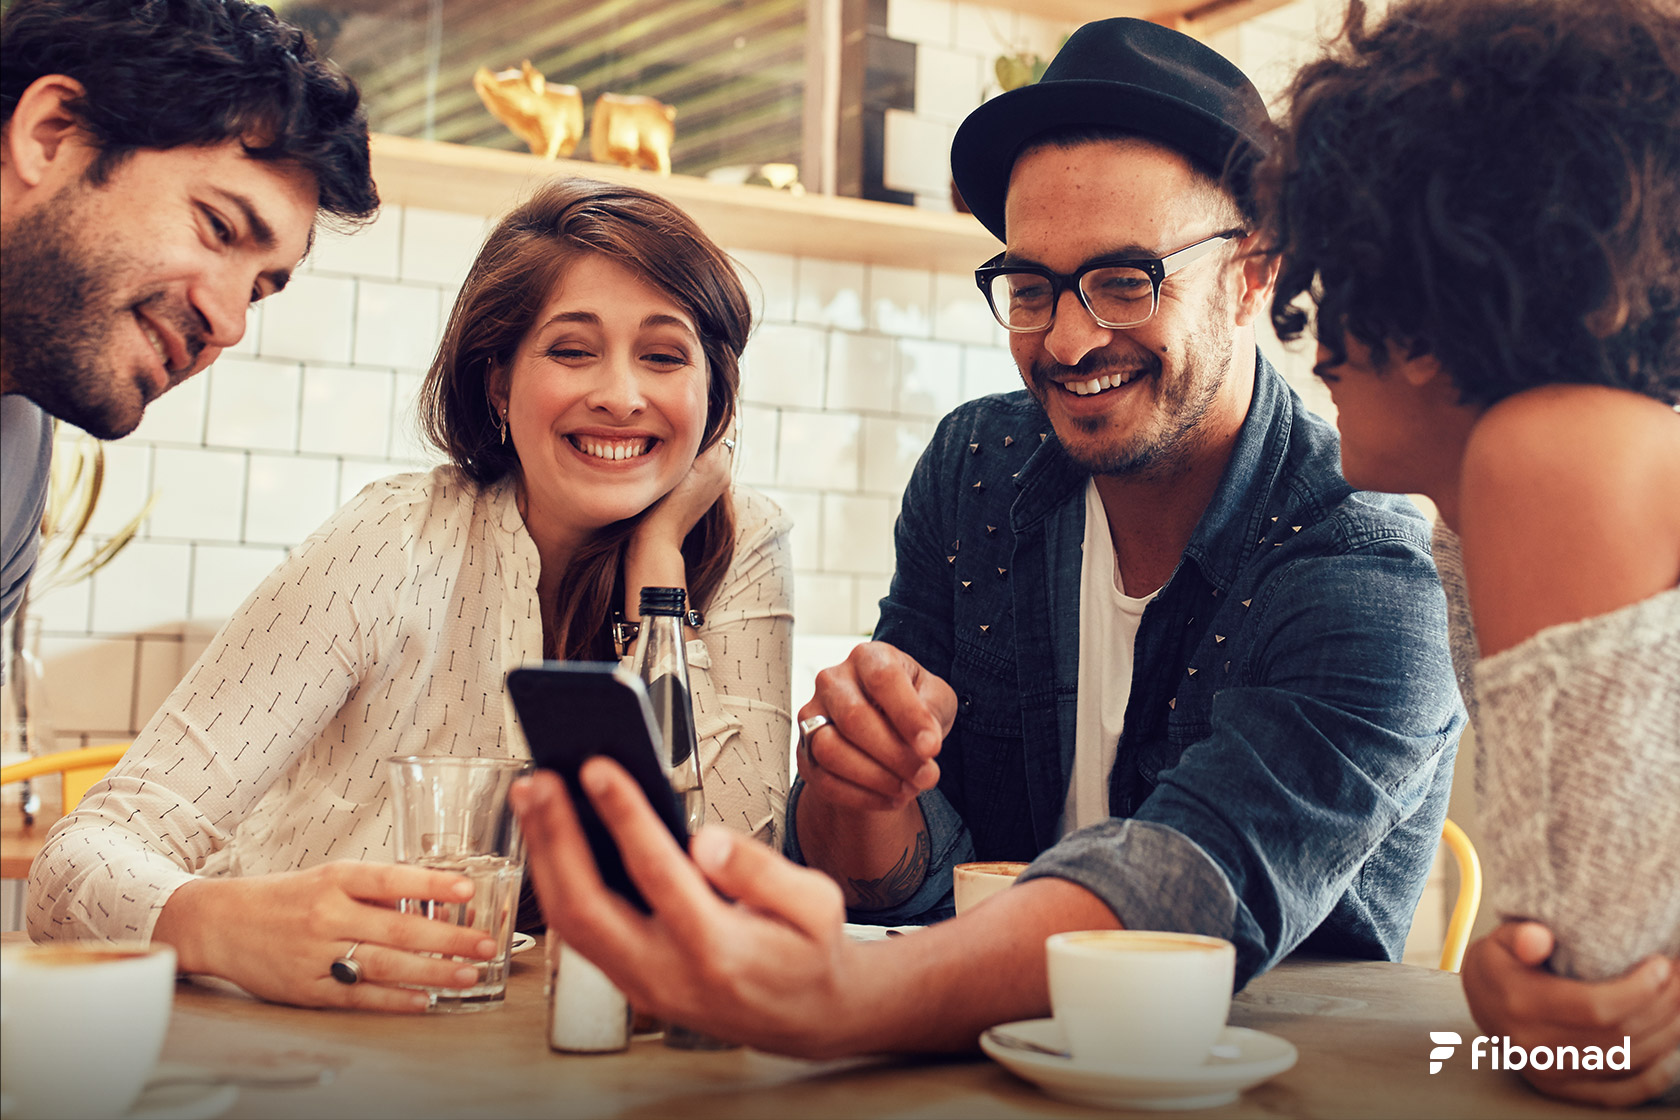 Mobile advertising trends to keep an eye on this 2018 for Mobili ad trend